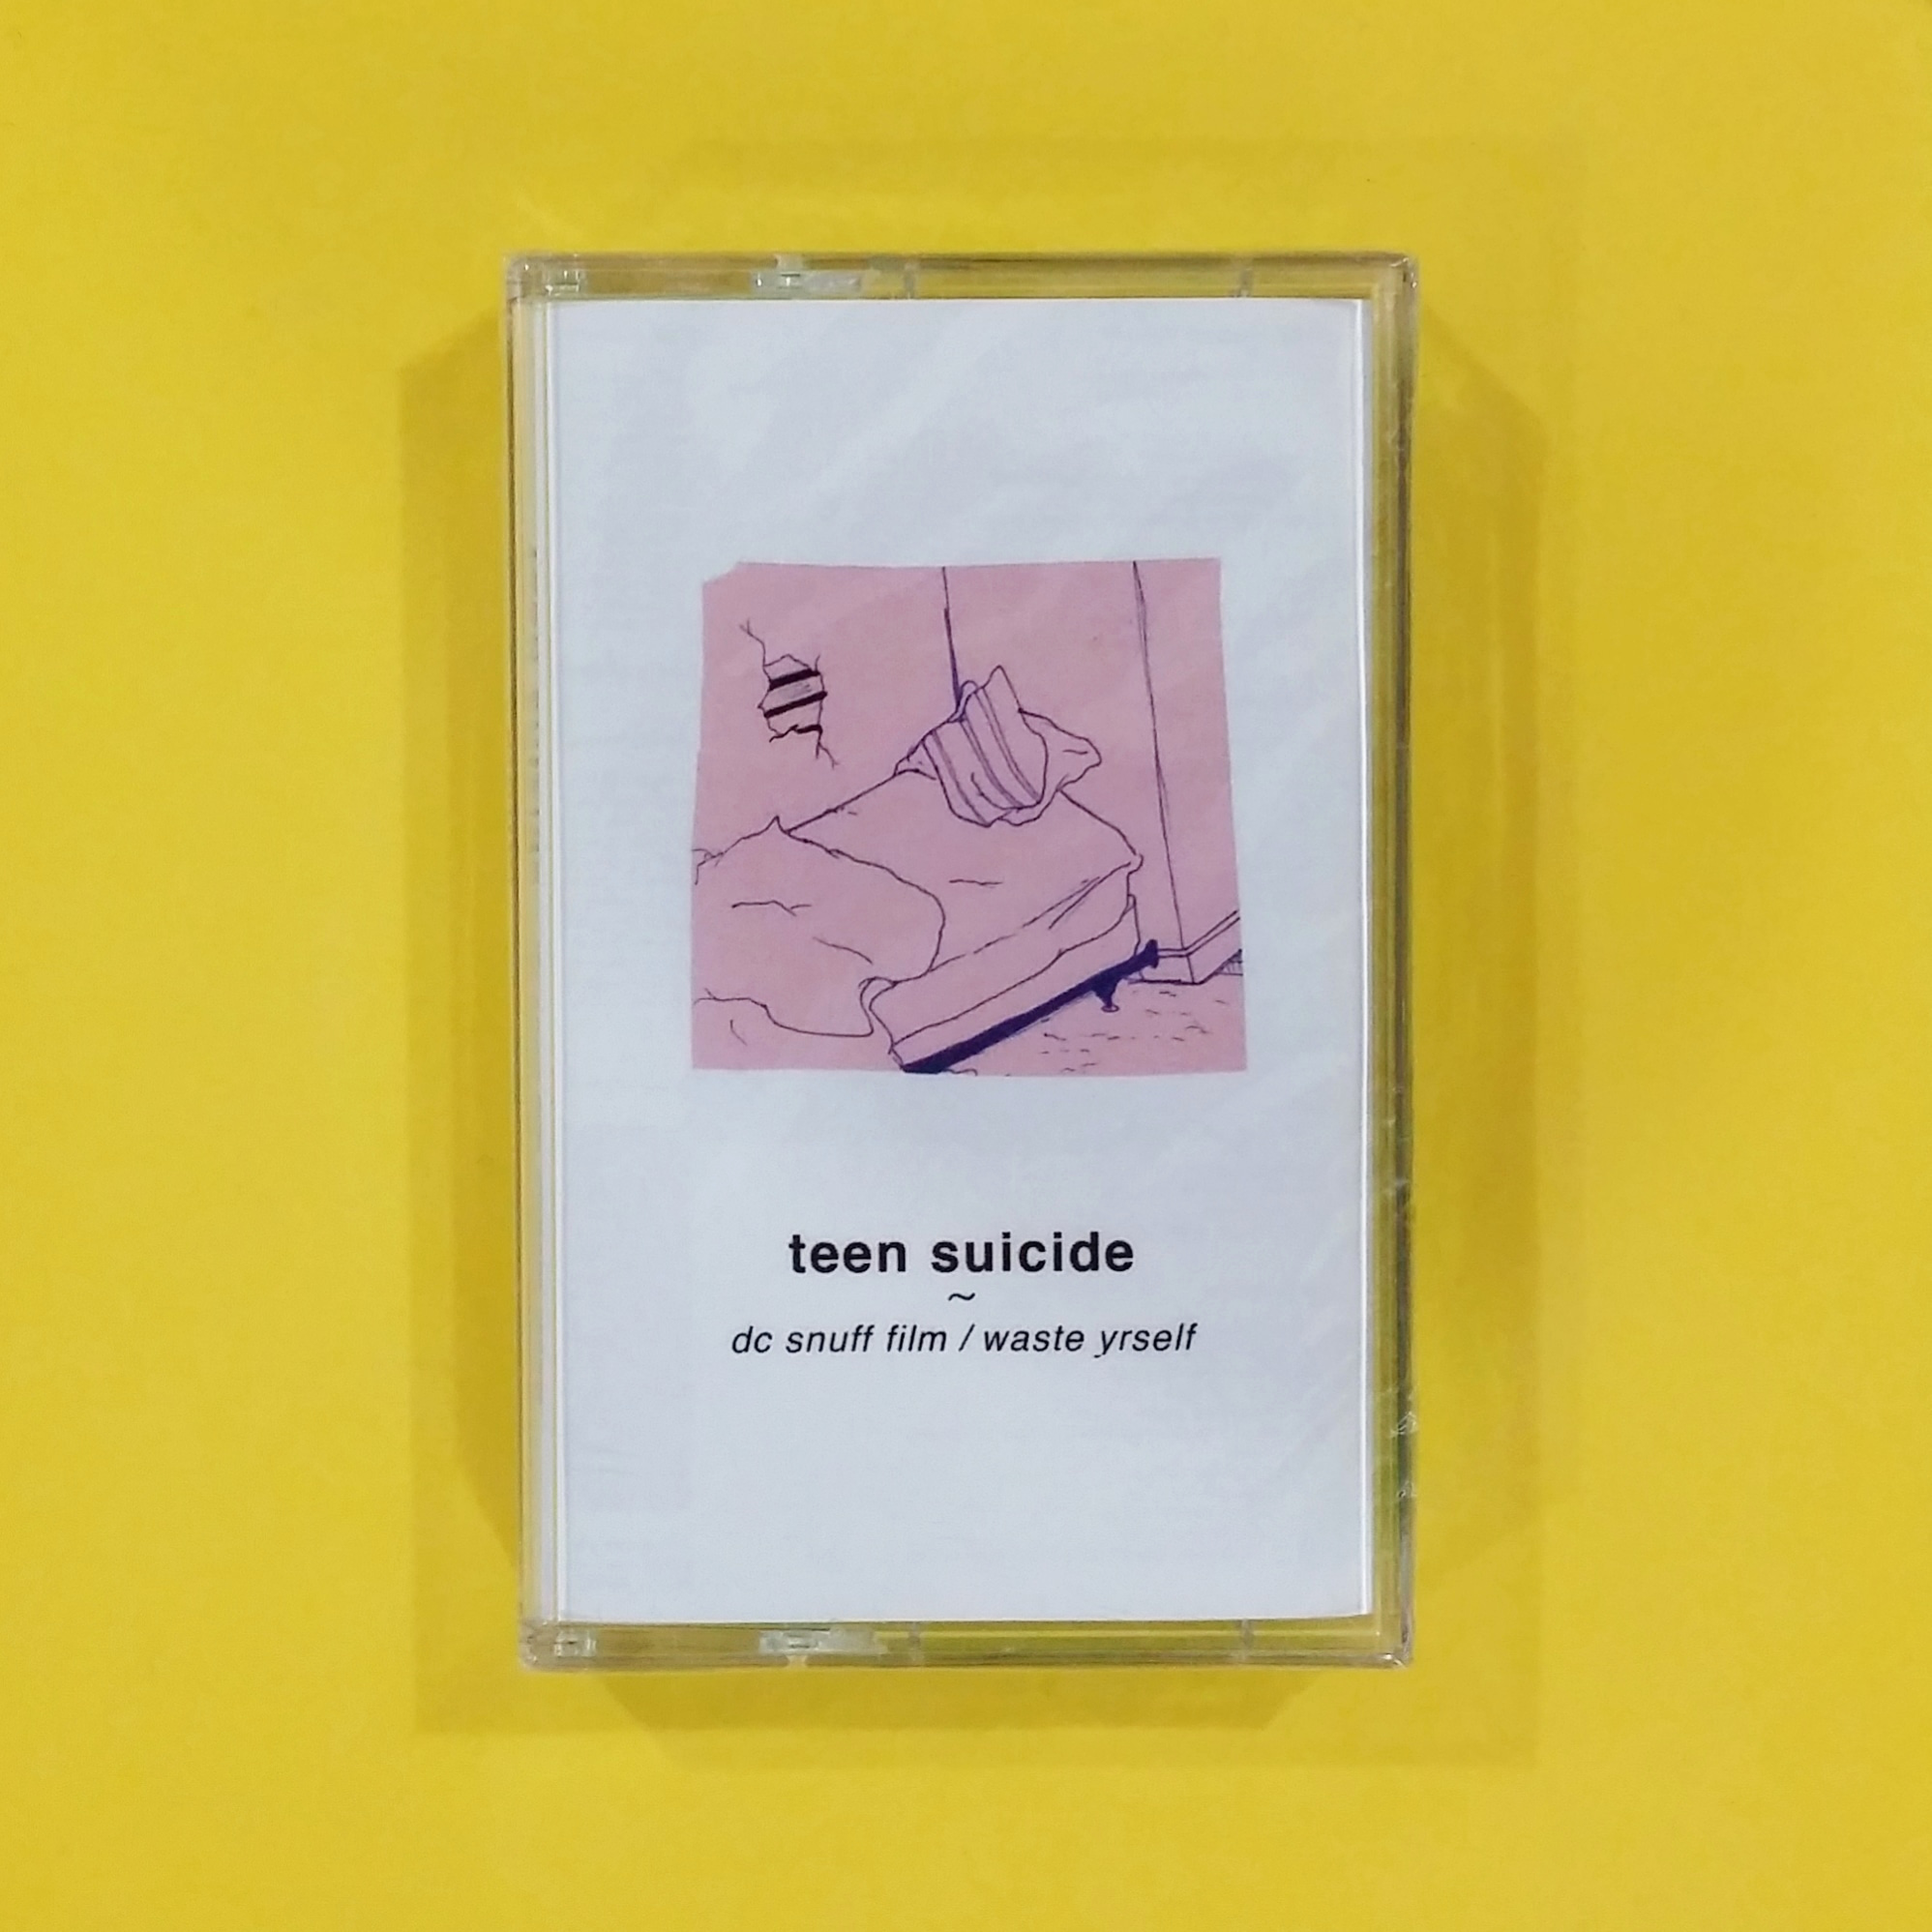 [SOLD] teen suicide - dc snuff film / waste yrself (Run for Cover Records)